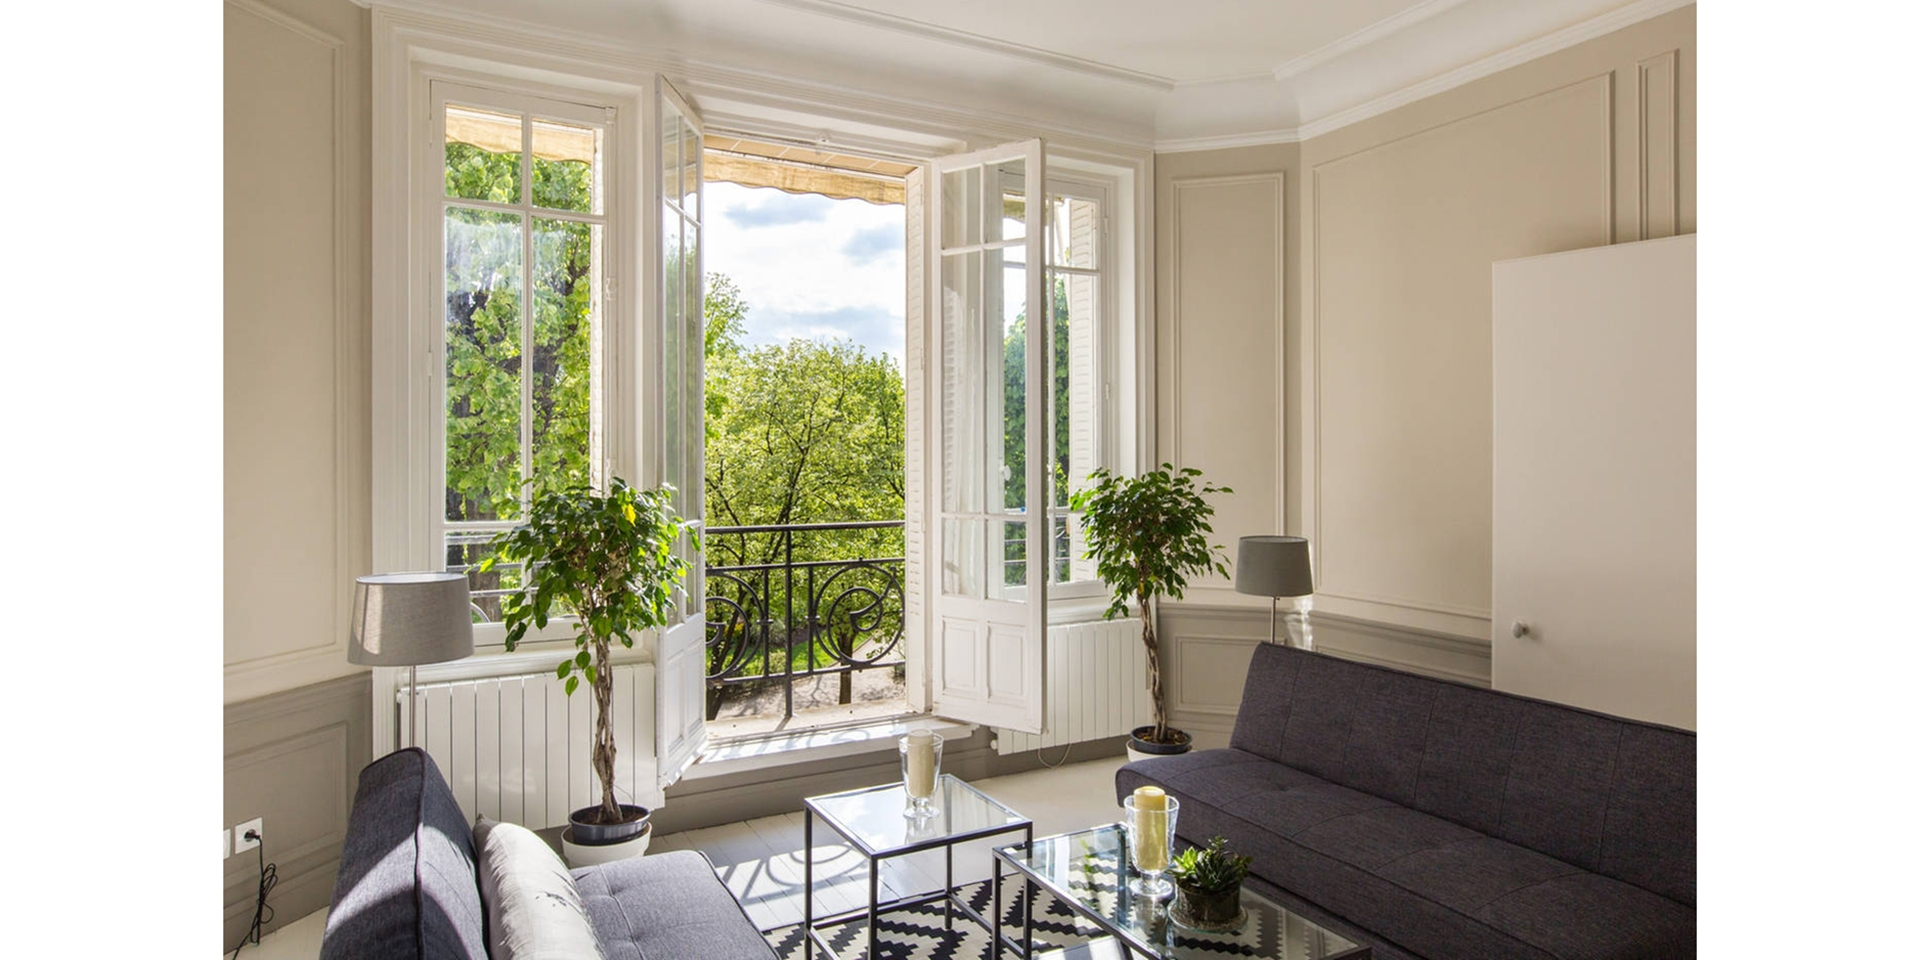 Tribute Portfolio Homes extends to Paris, now including this stunning 3-bedroom Parisian atelier in the 7th Arrondissement.